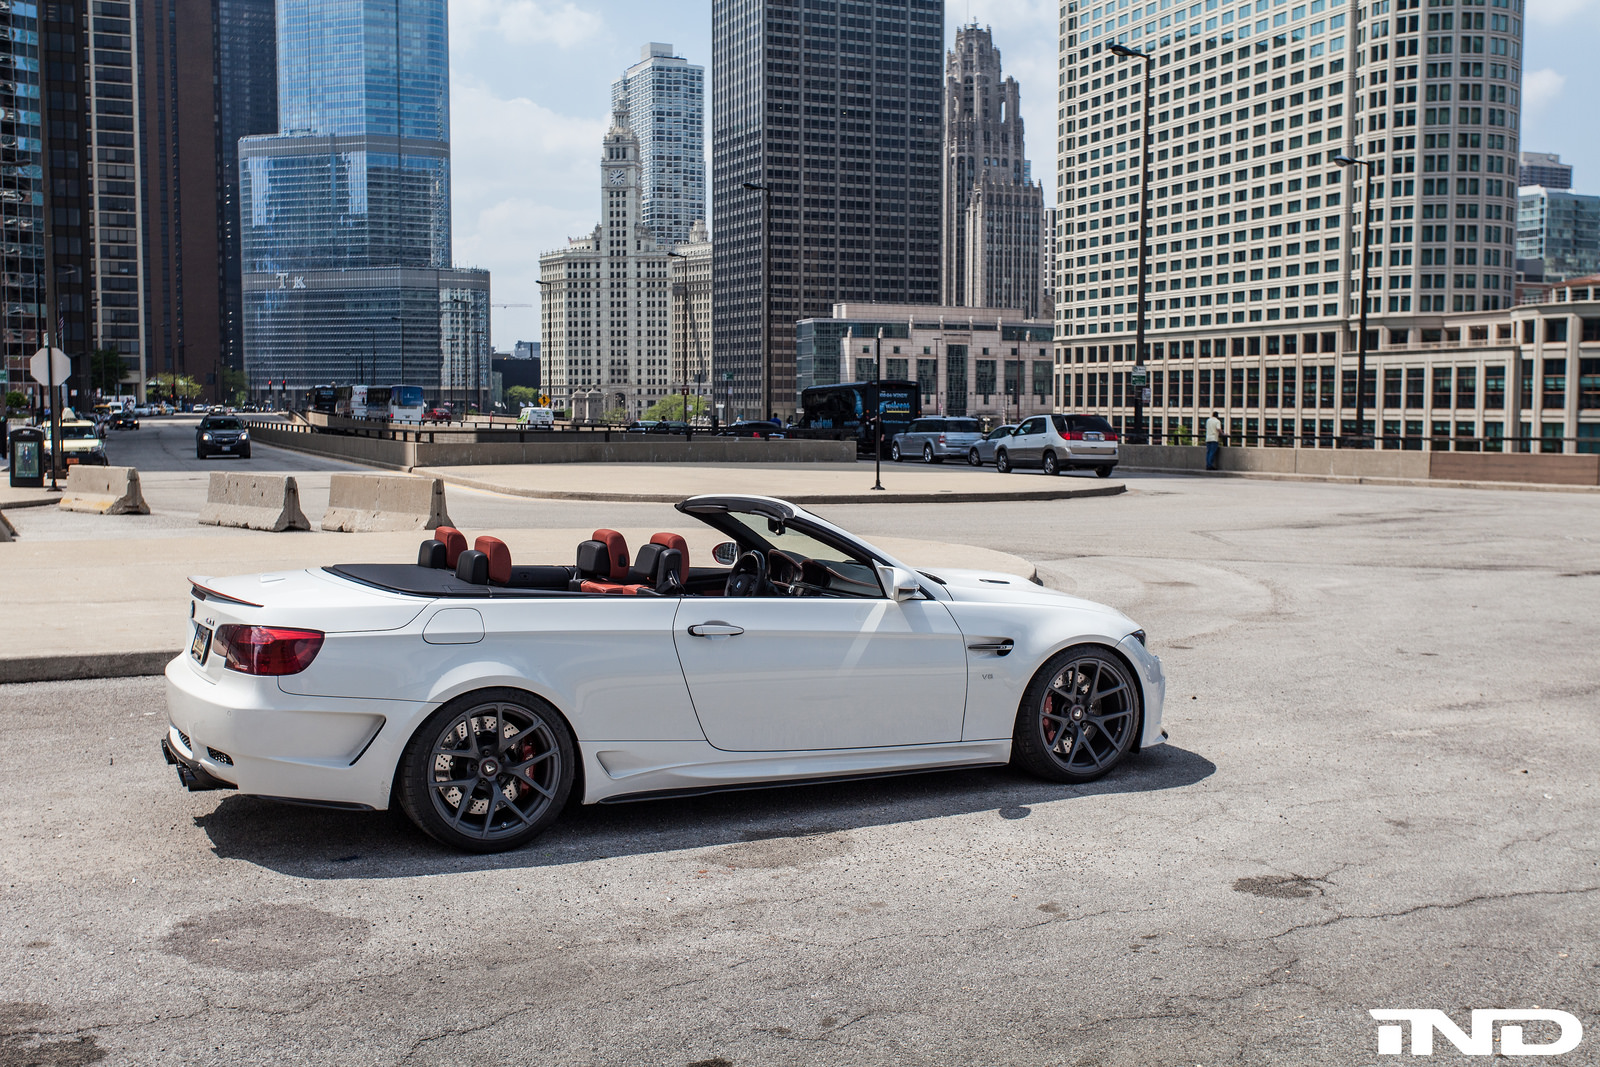 Bmw M3 Convertible >> iND's Ear to Ear M3 Convertible Is Truly One of a Kind - autoevolution